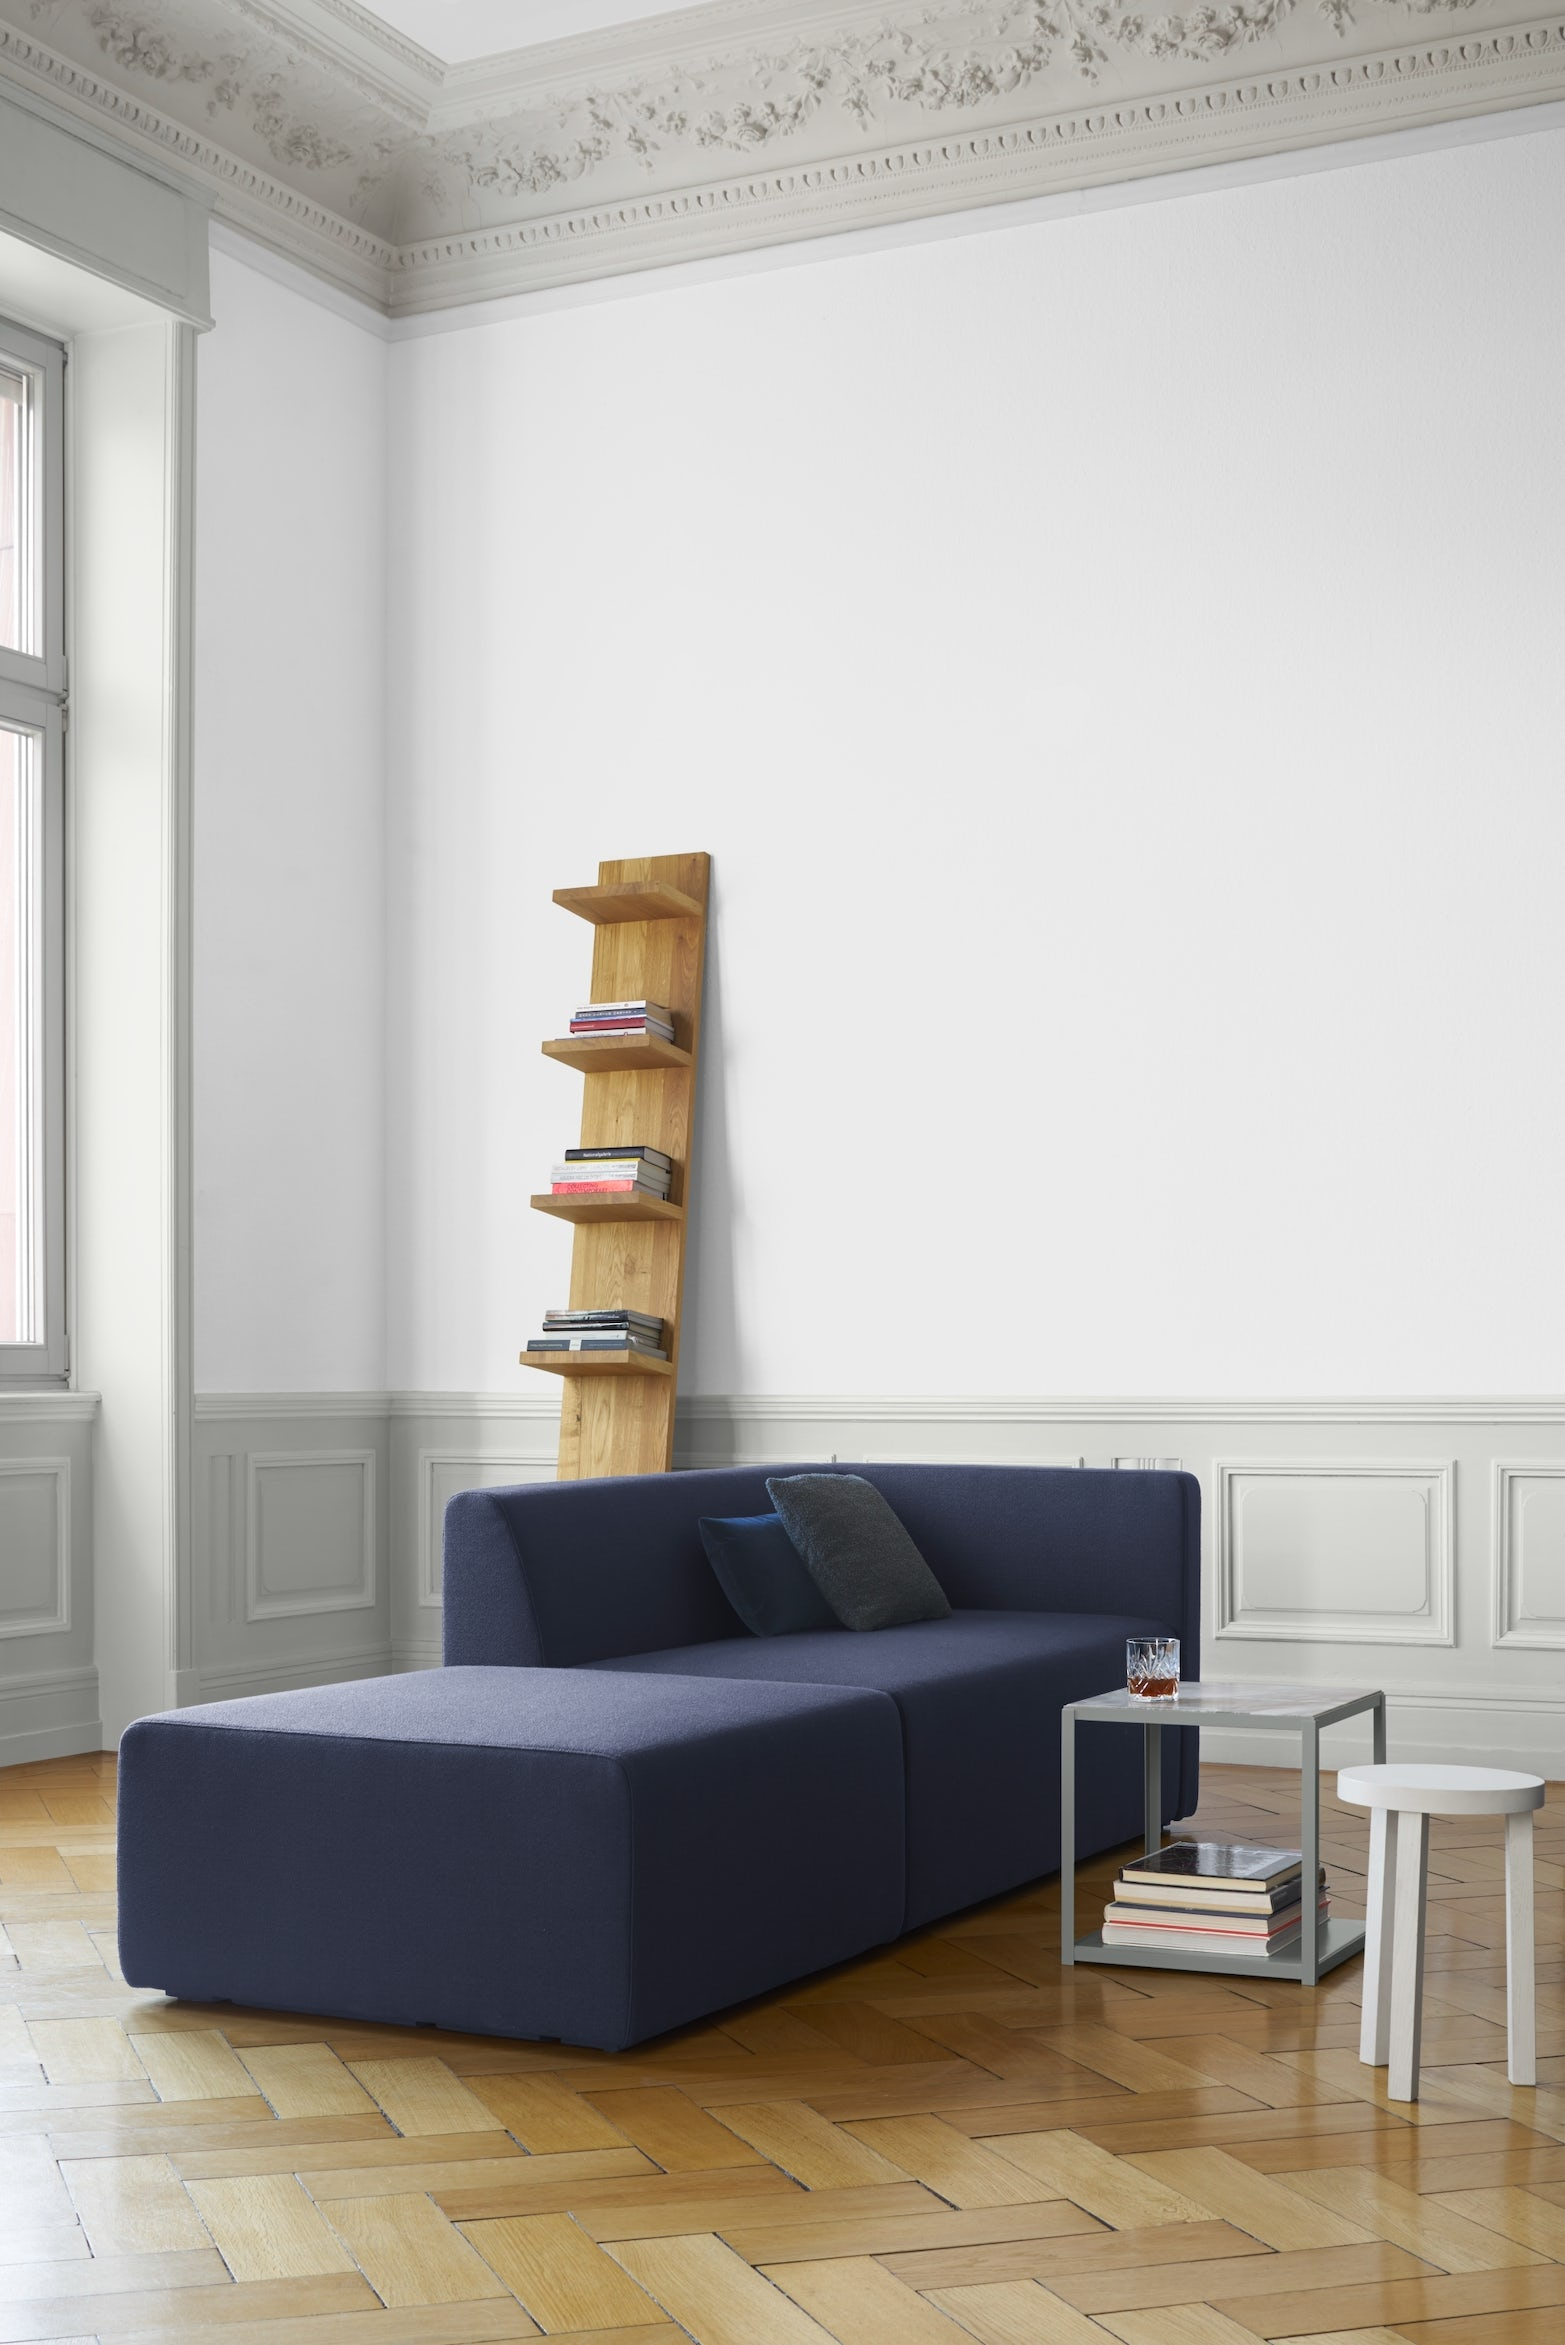 e15 mate shelf with kerman sofa and forty forty table